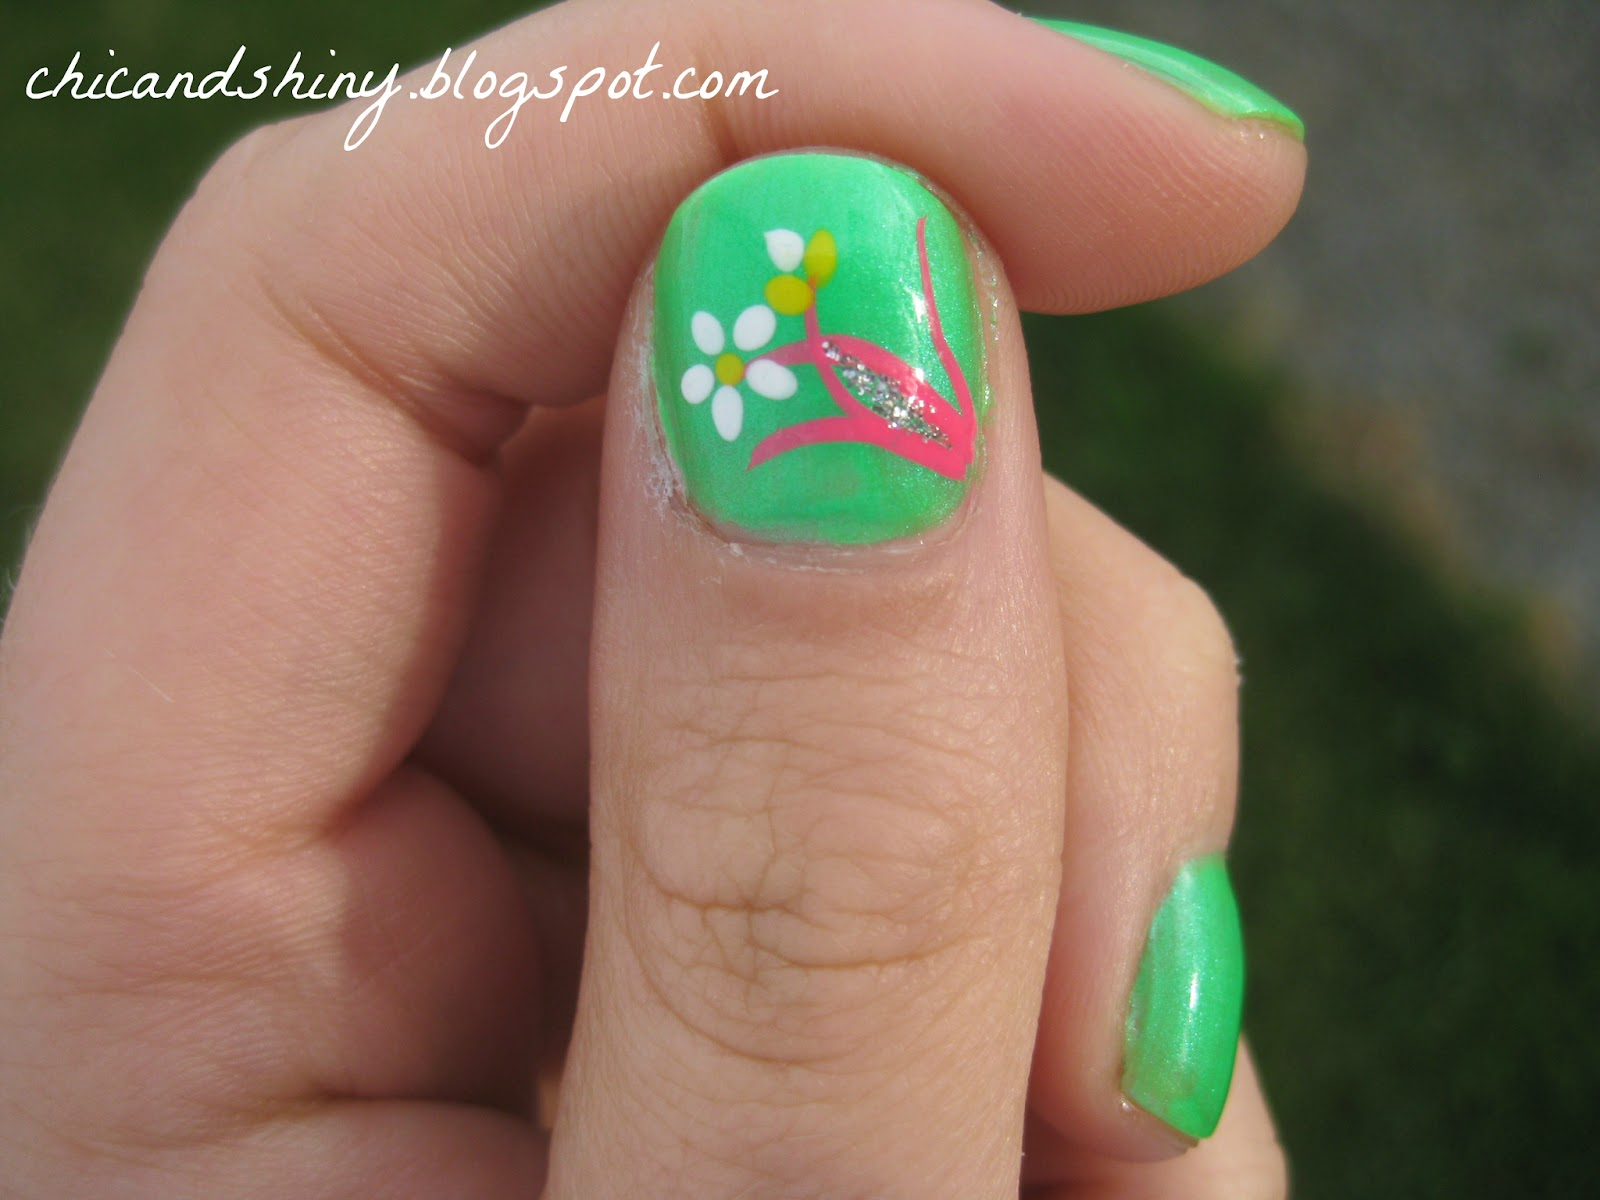 Chic & Shiny: Simple Floral Nail Art